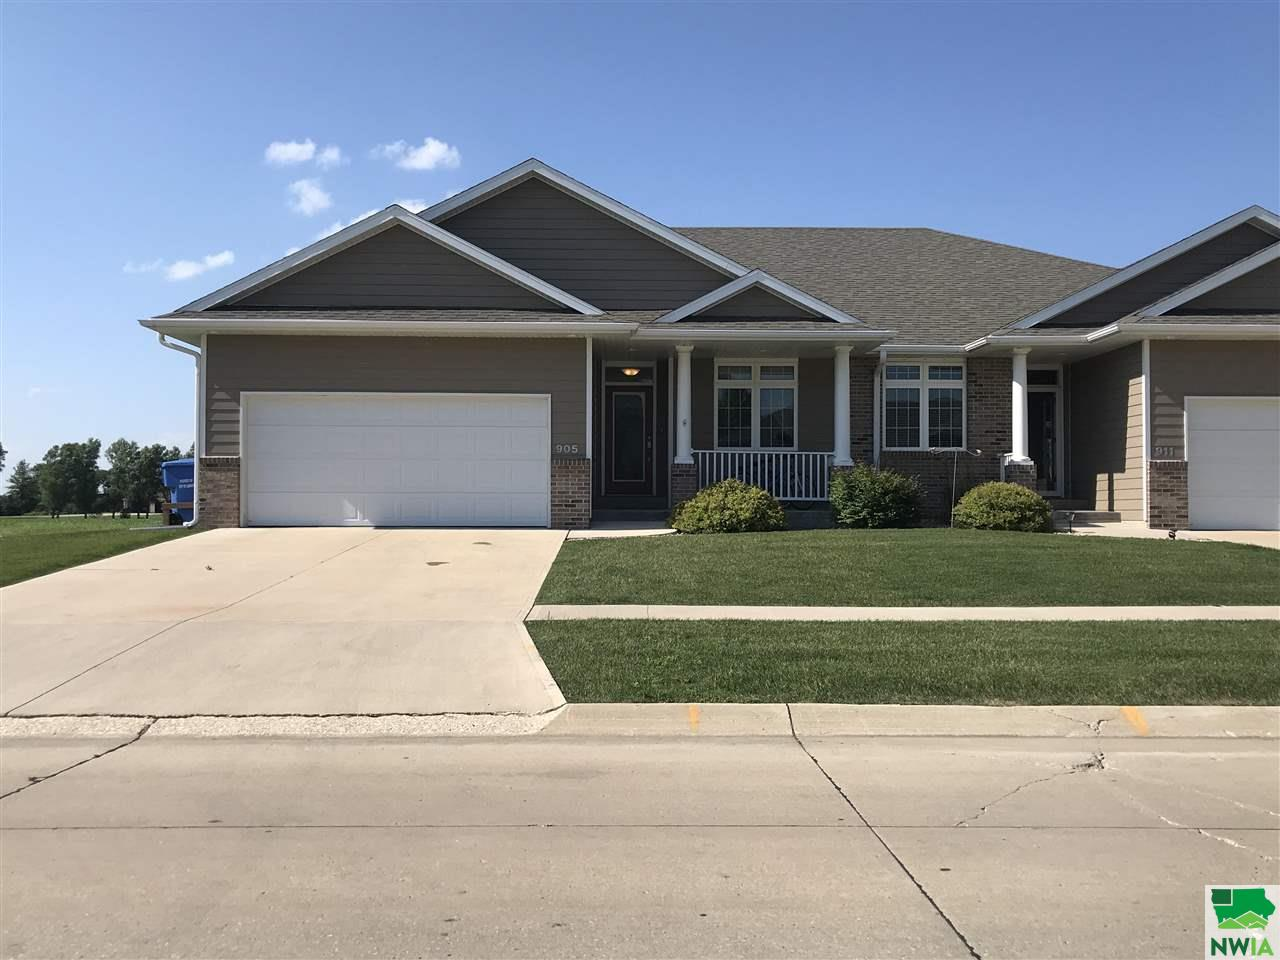 Property for sale at 905 Pga Dr, Lemars,  IA 51031